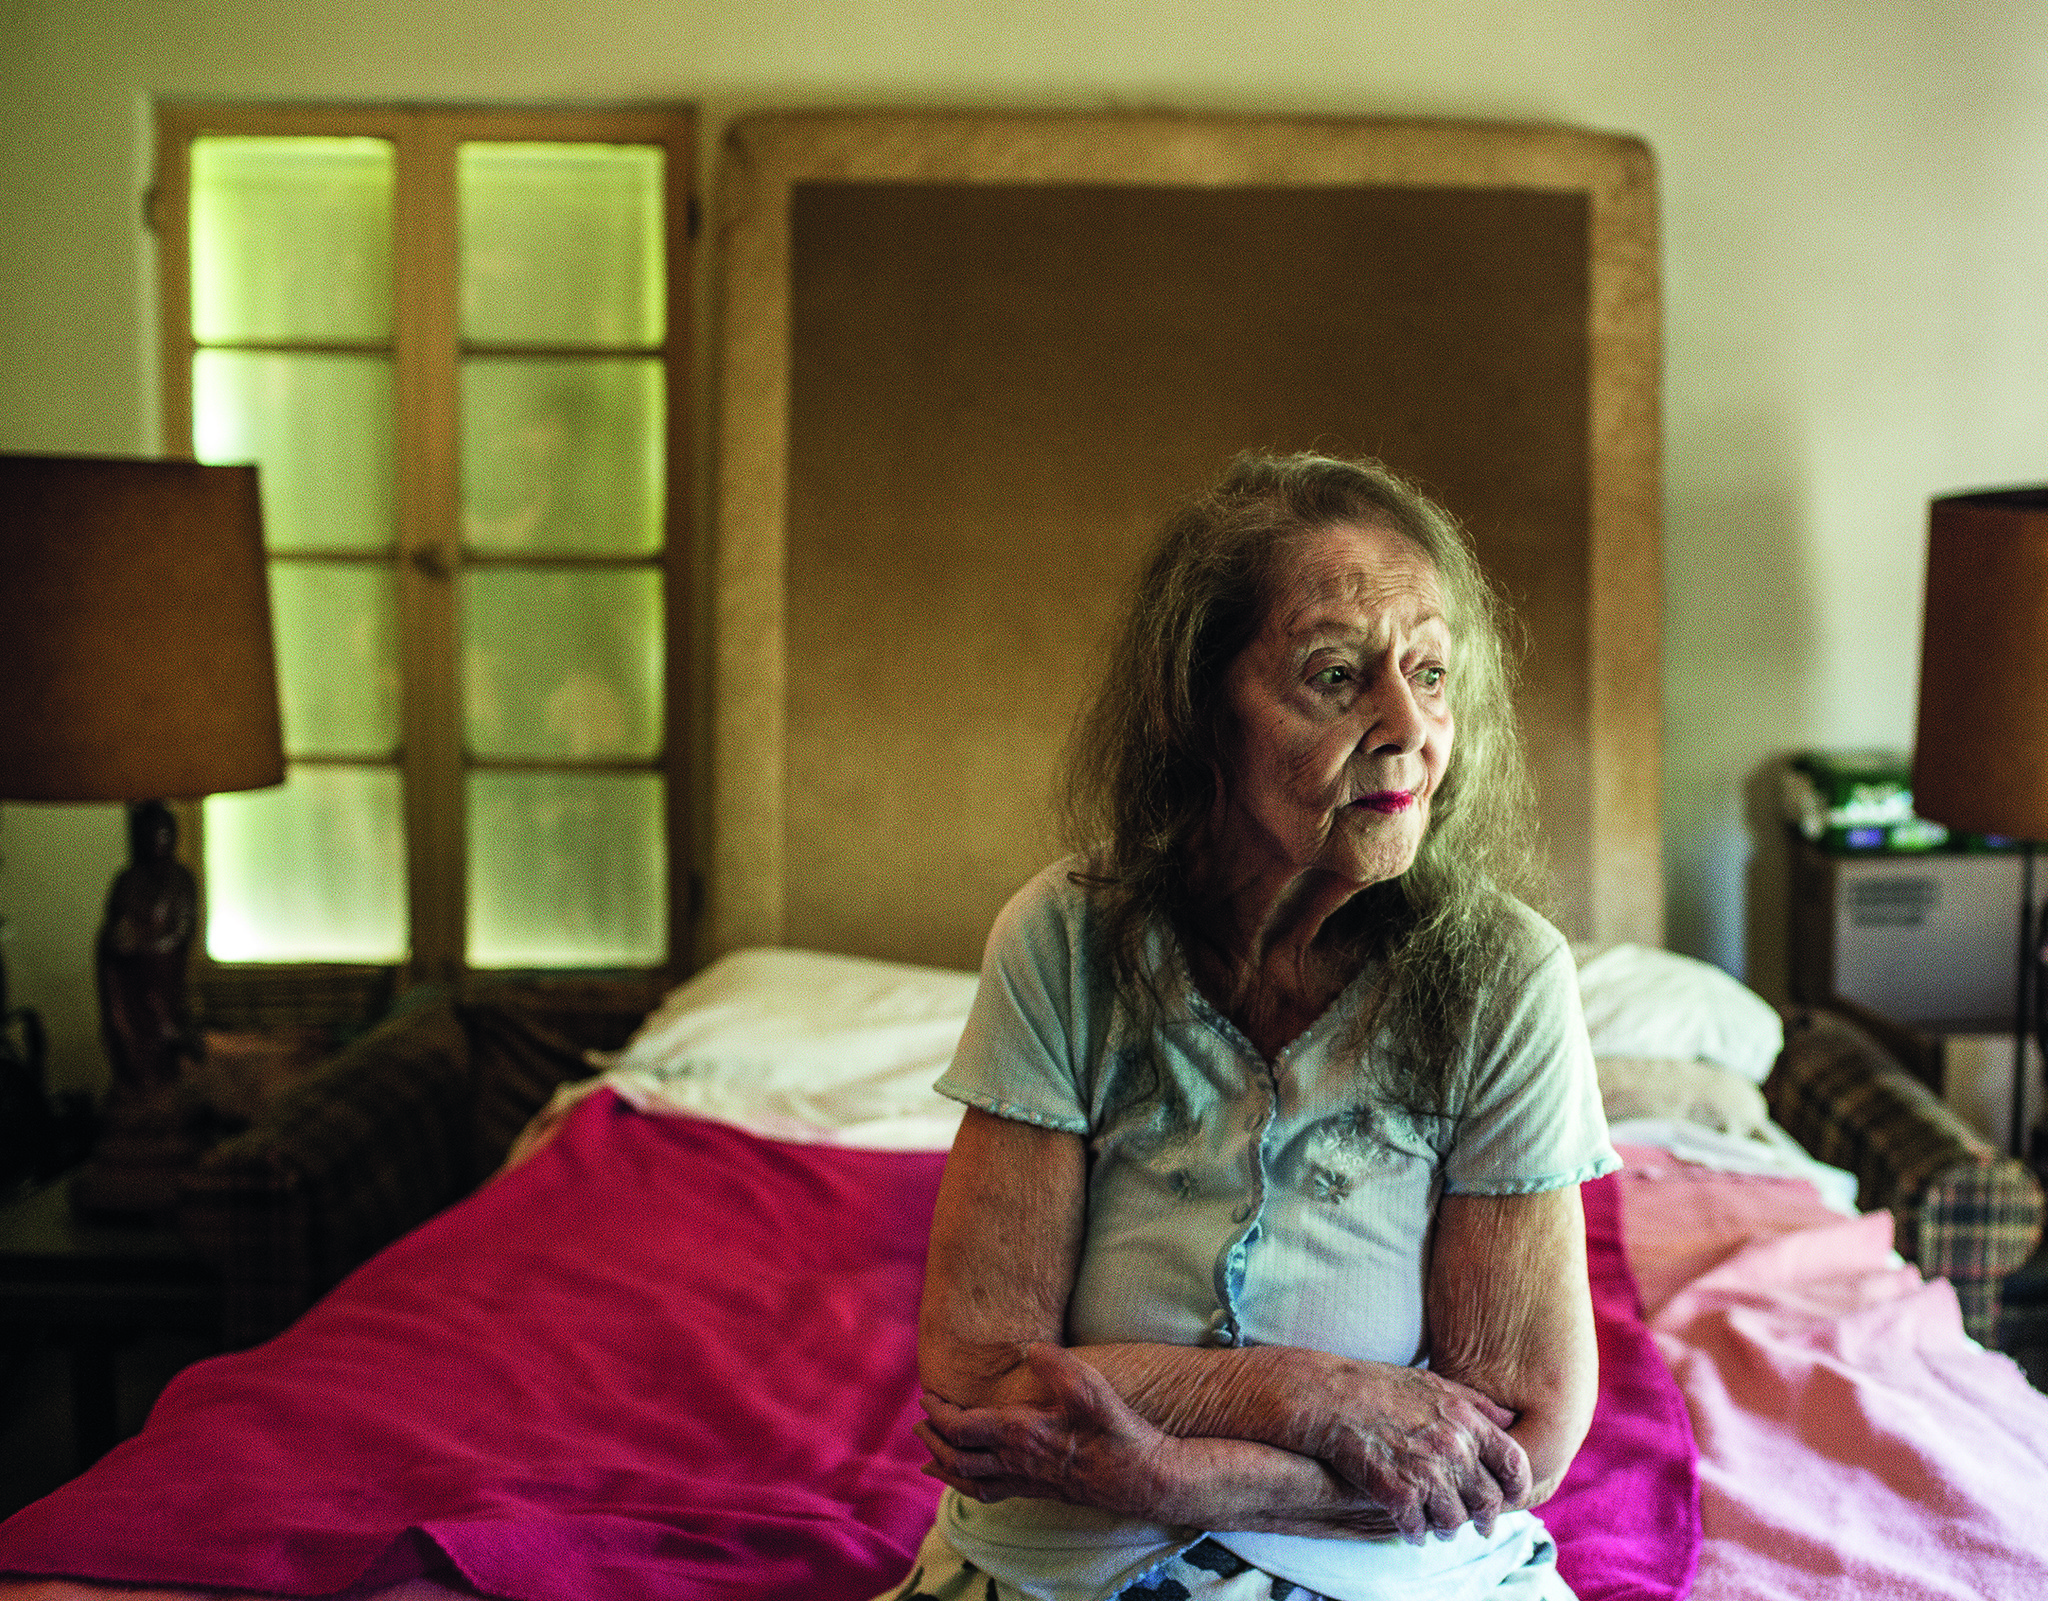 Frances, a former dance instructor, has lived in the building for 43 years.